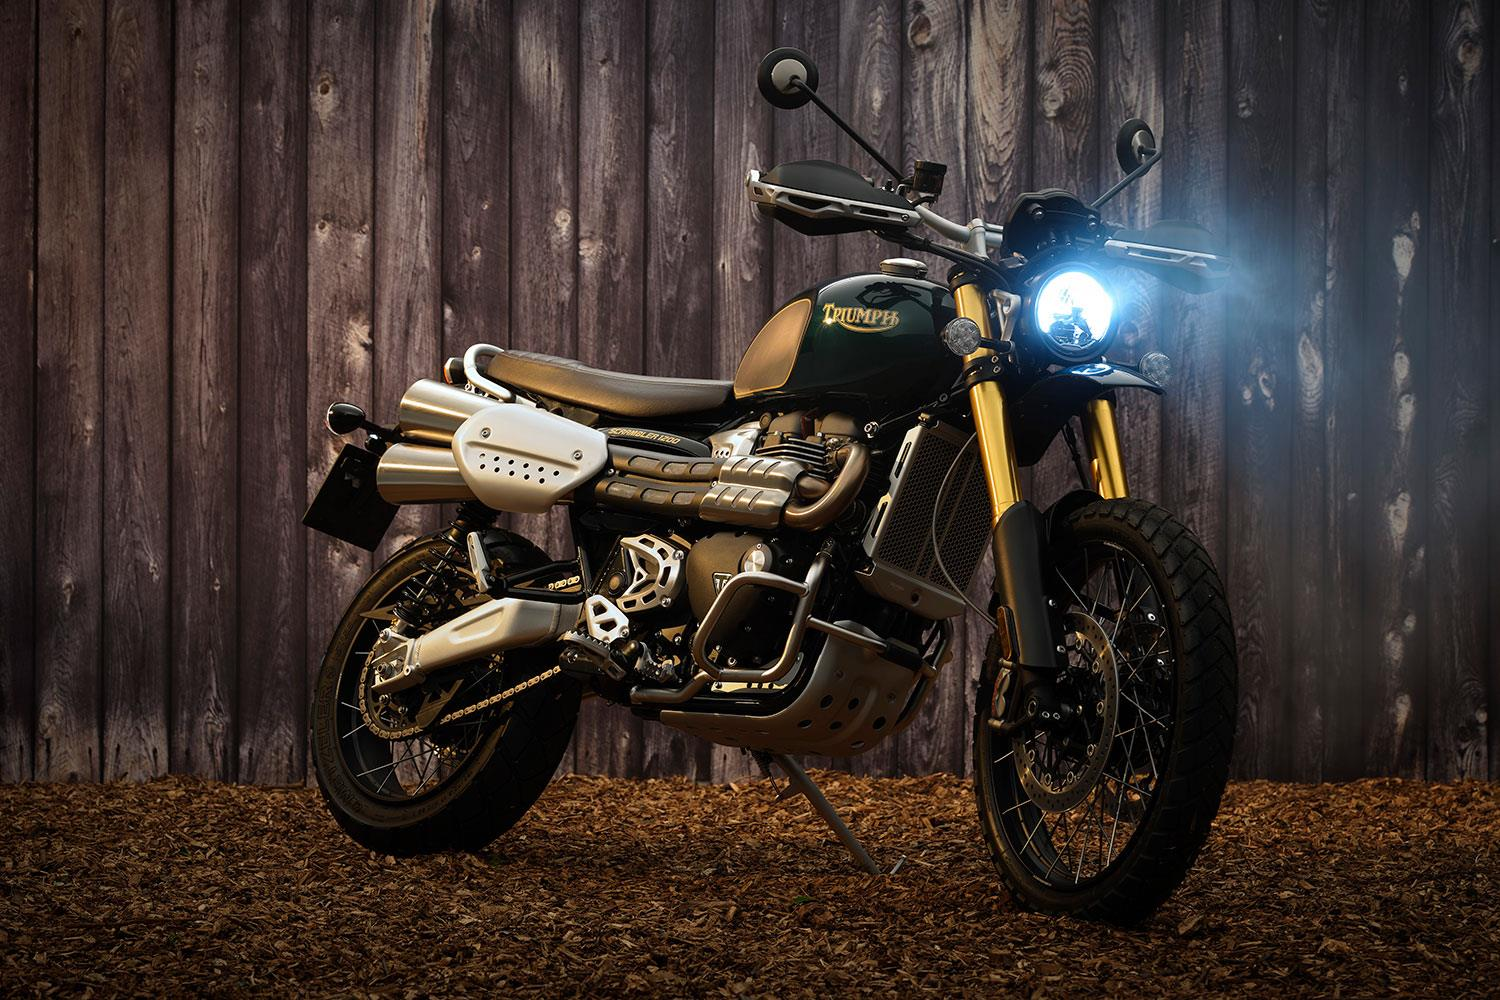 Triumph's new King of Cool: Steve McQueen edition Scrambler 1200 unveiled alongside updates